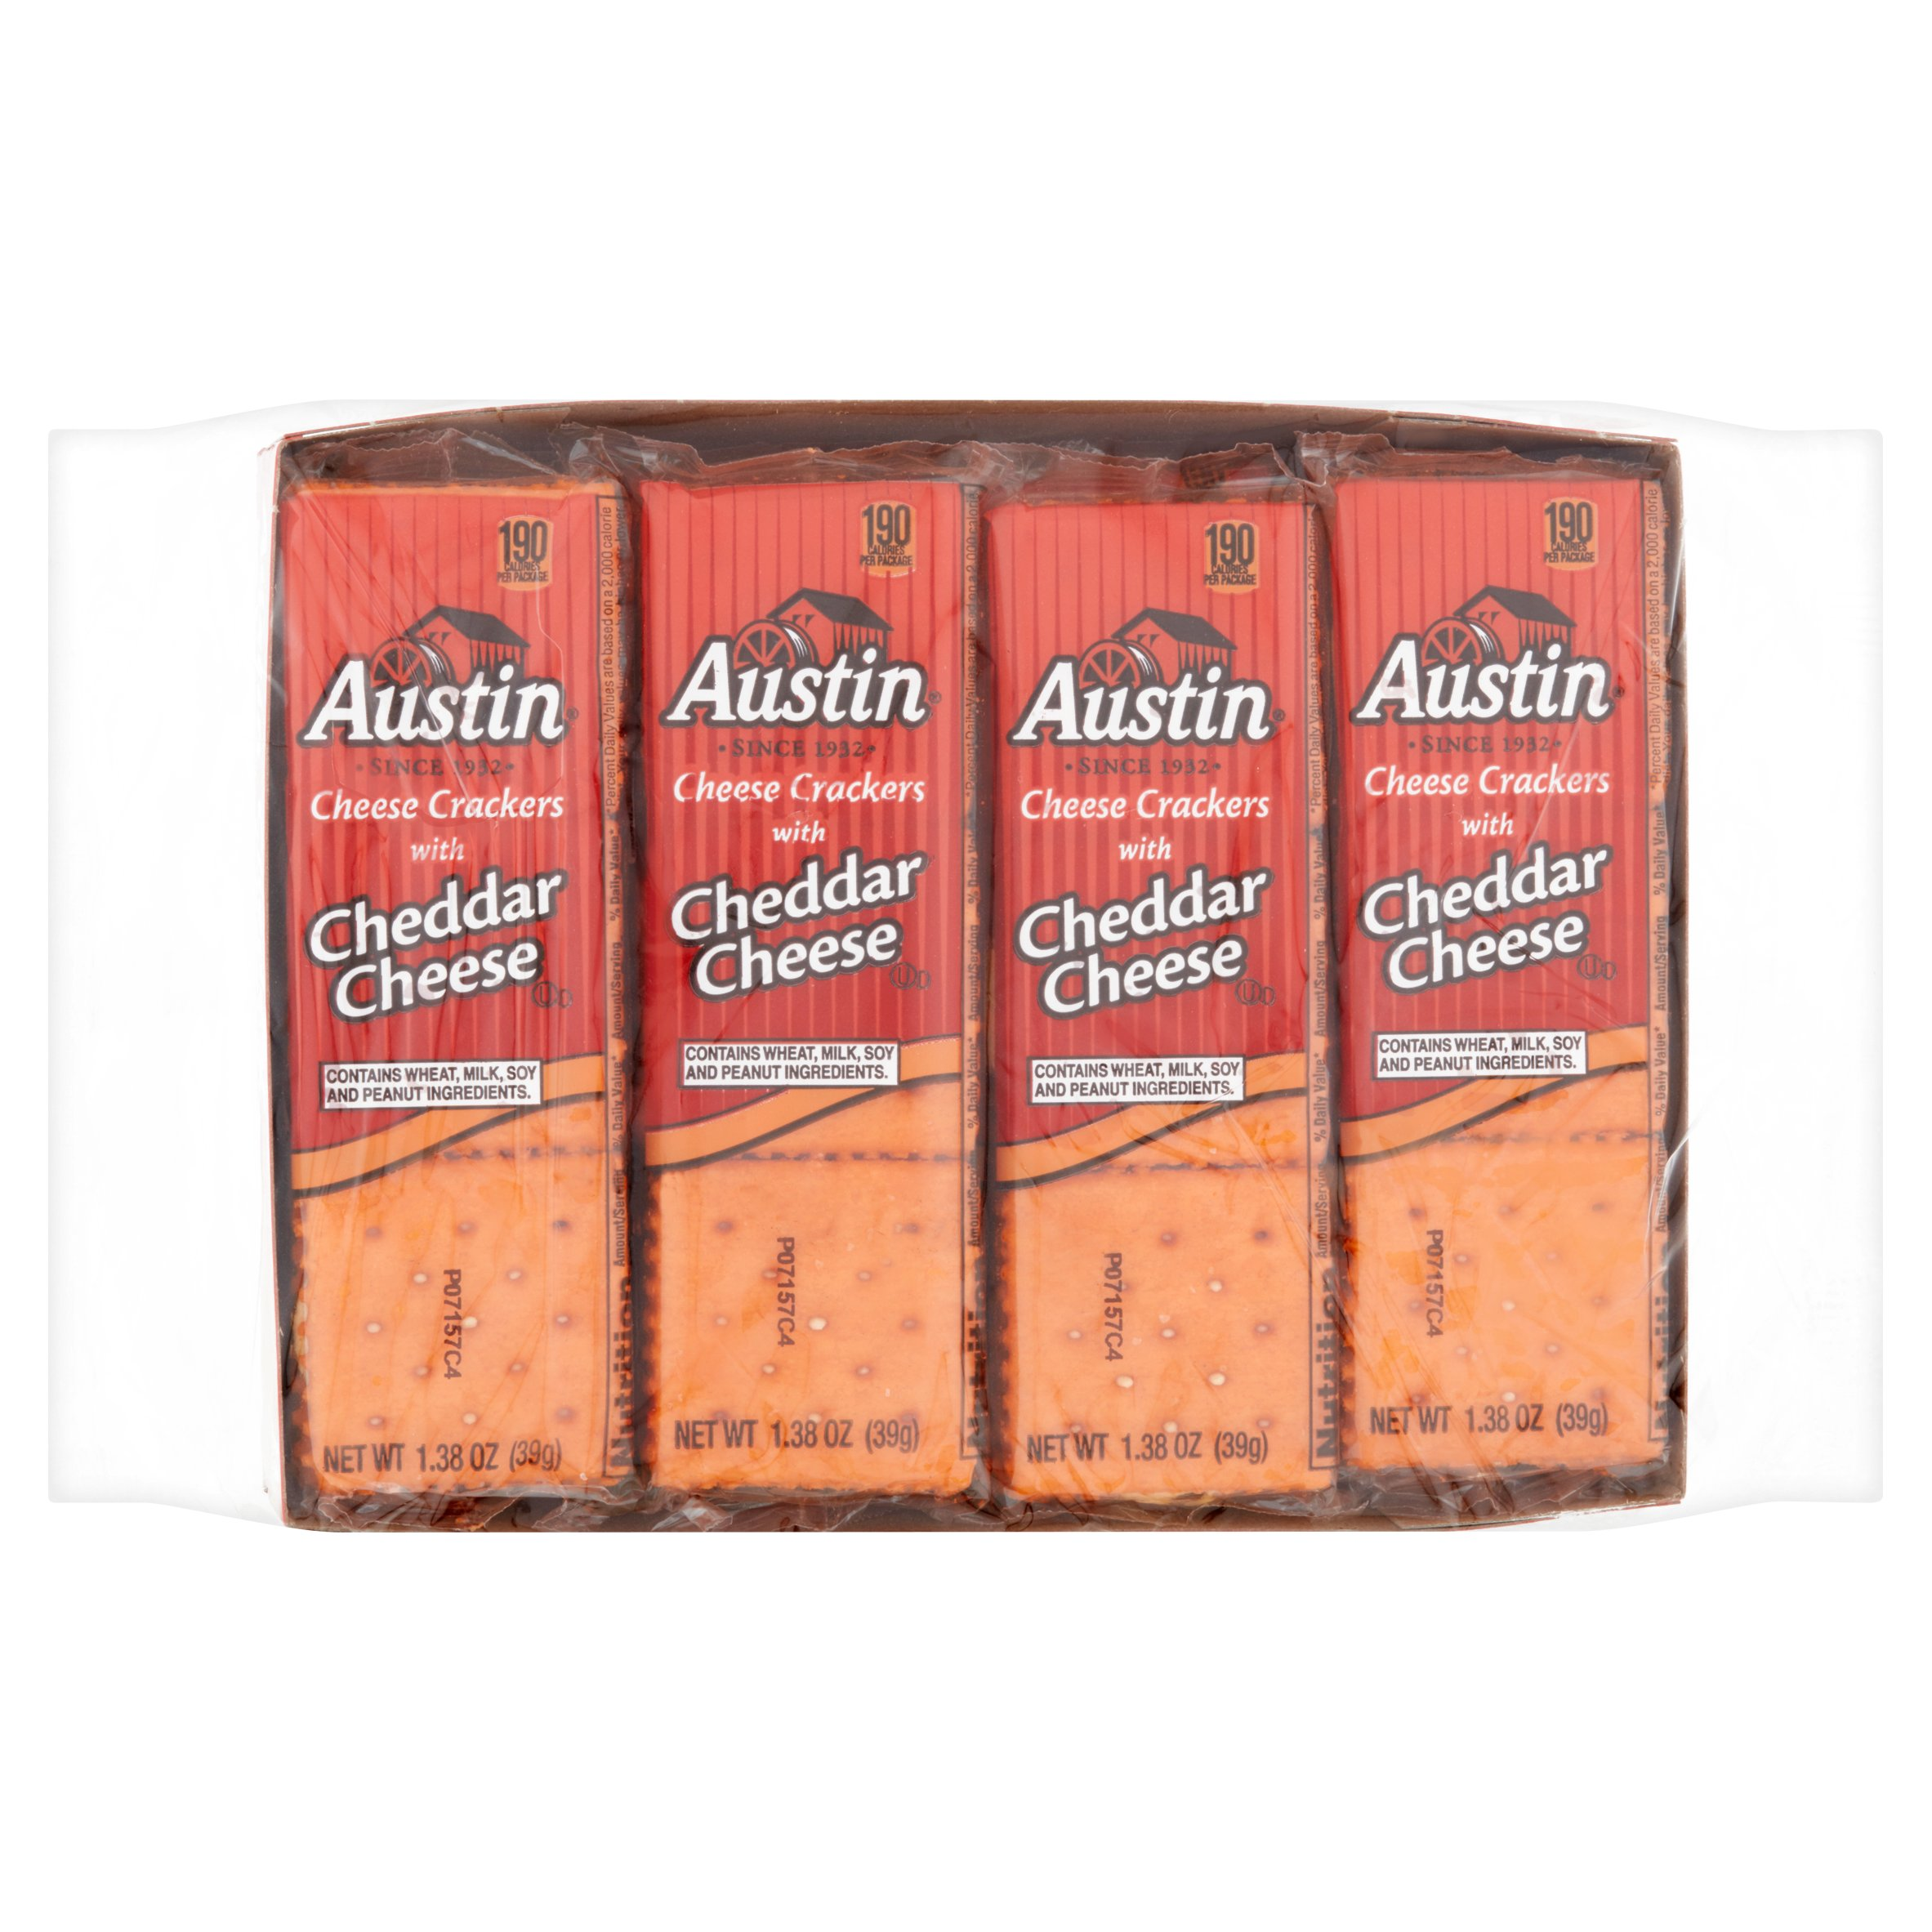 Austin Cheese Snack Crackers with Cheddar Cheese 8-1.38 oz. Package by Kellogg Sales Co.,